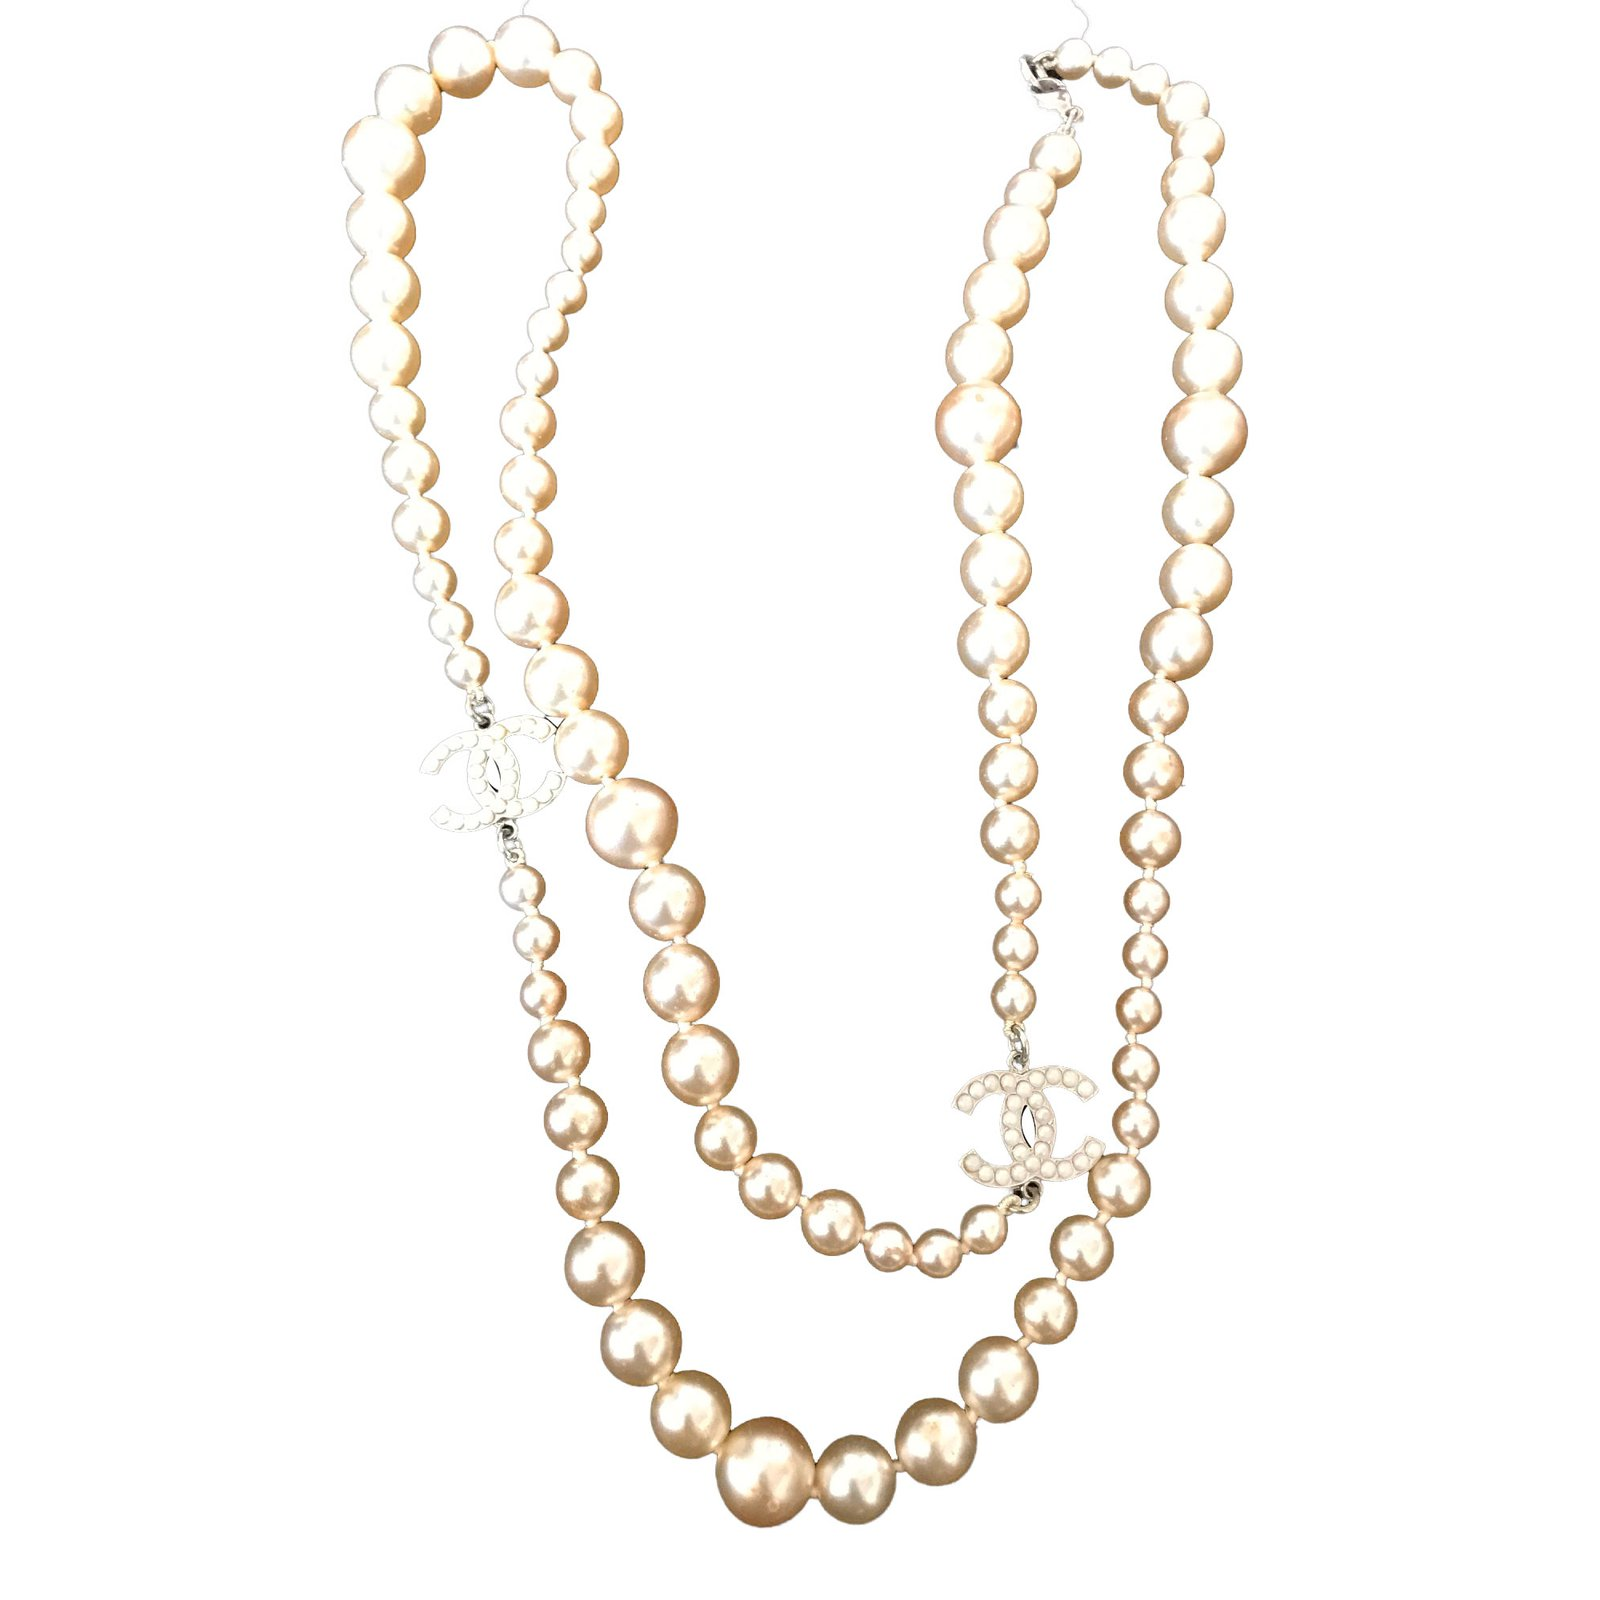 Product Name; Chanel Long Necklace Necklaces Pearl Other Ref 41093